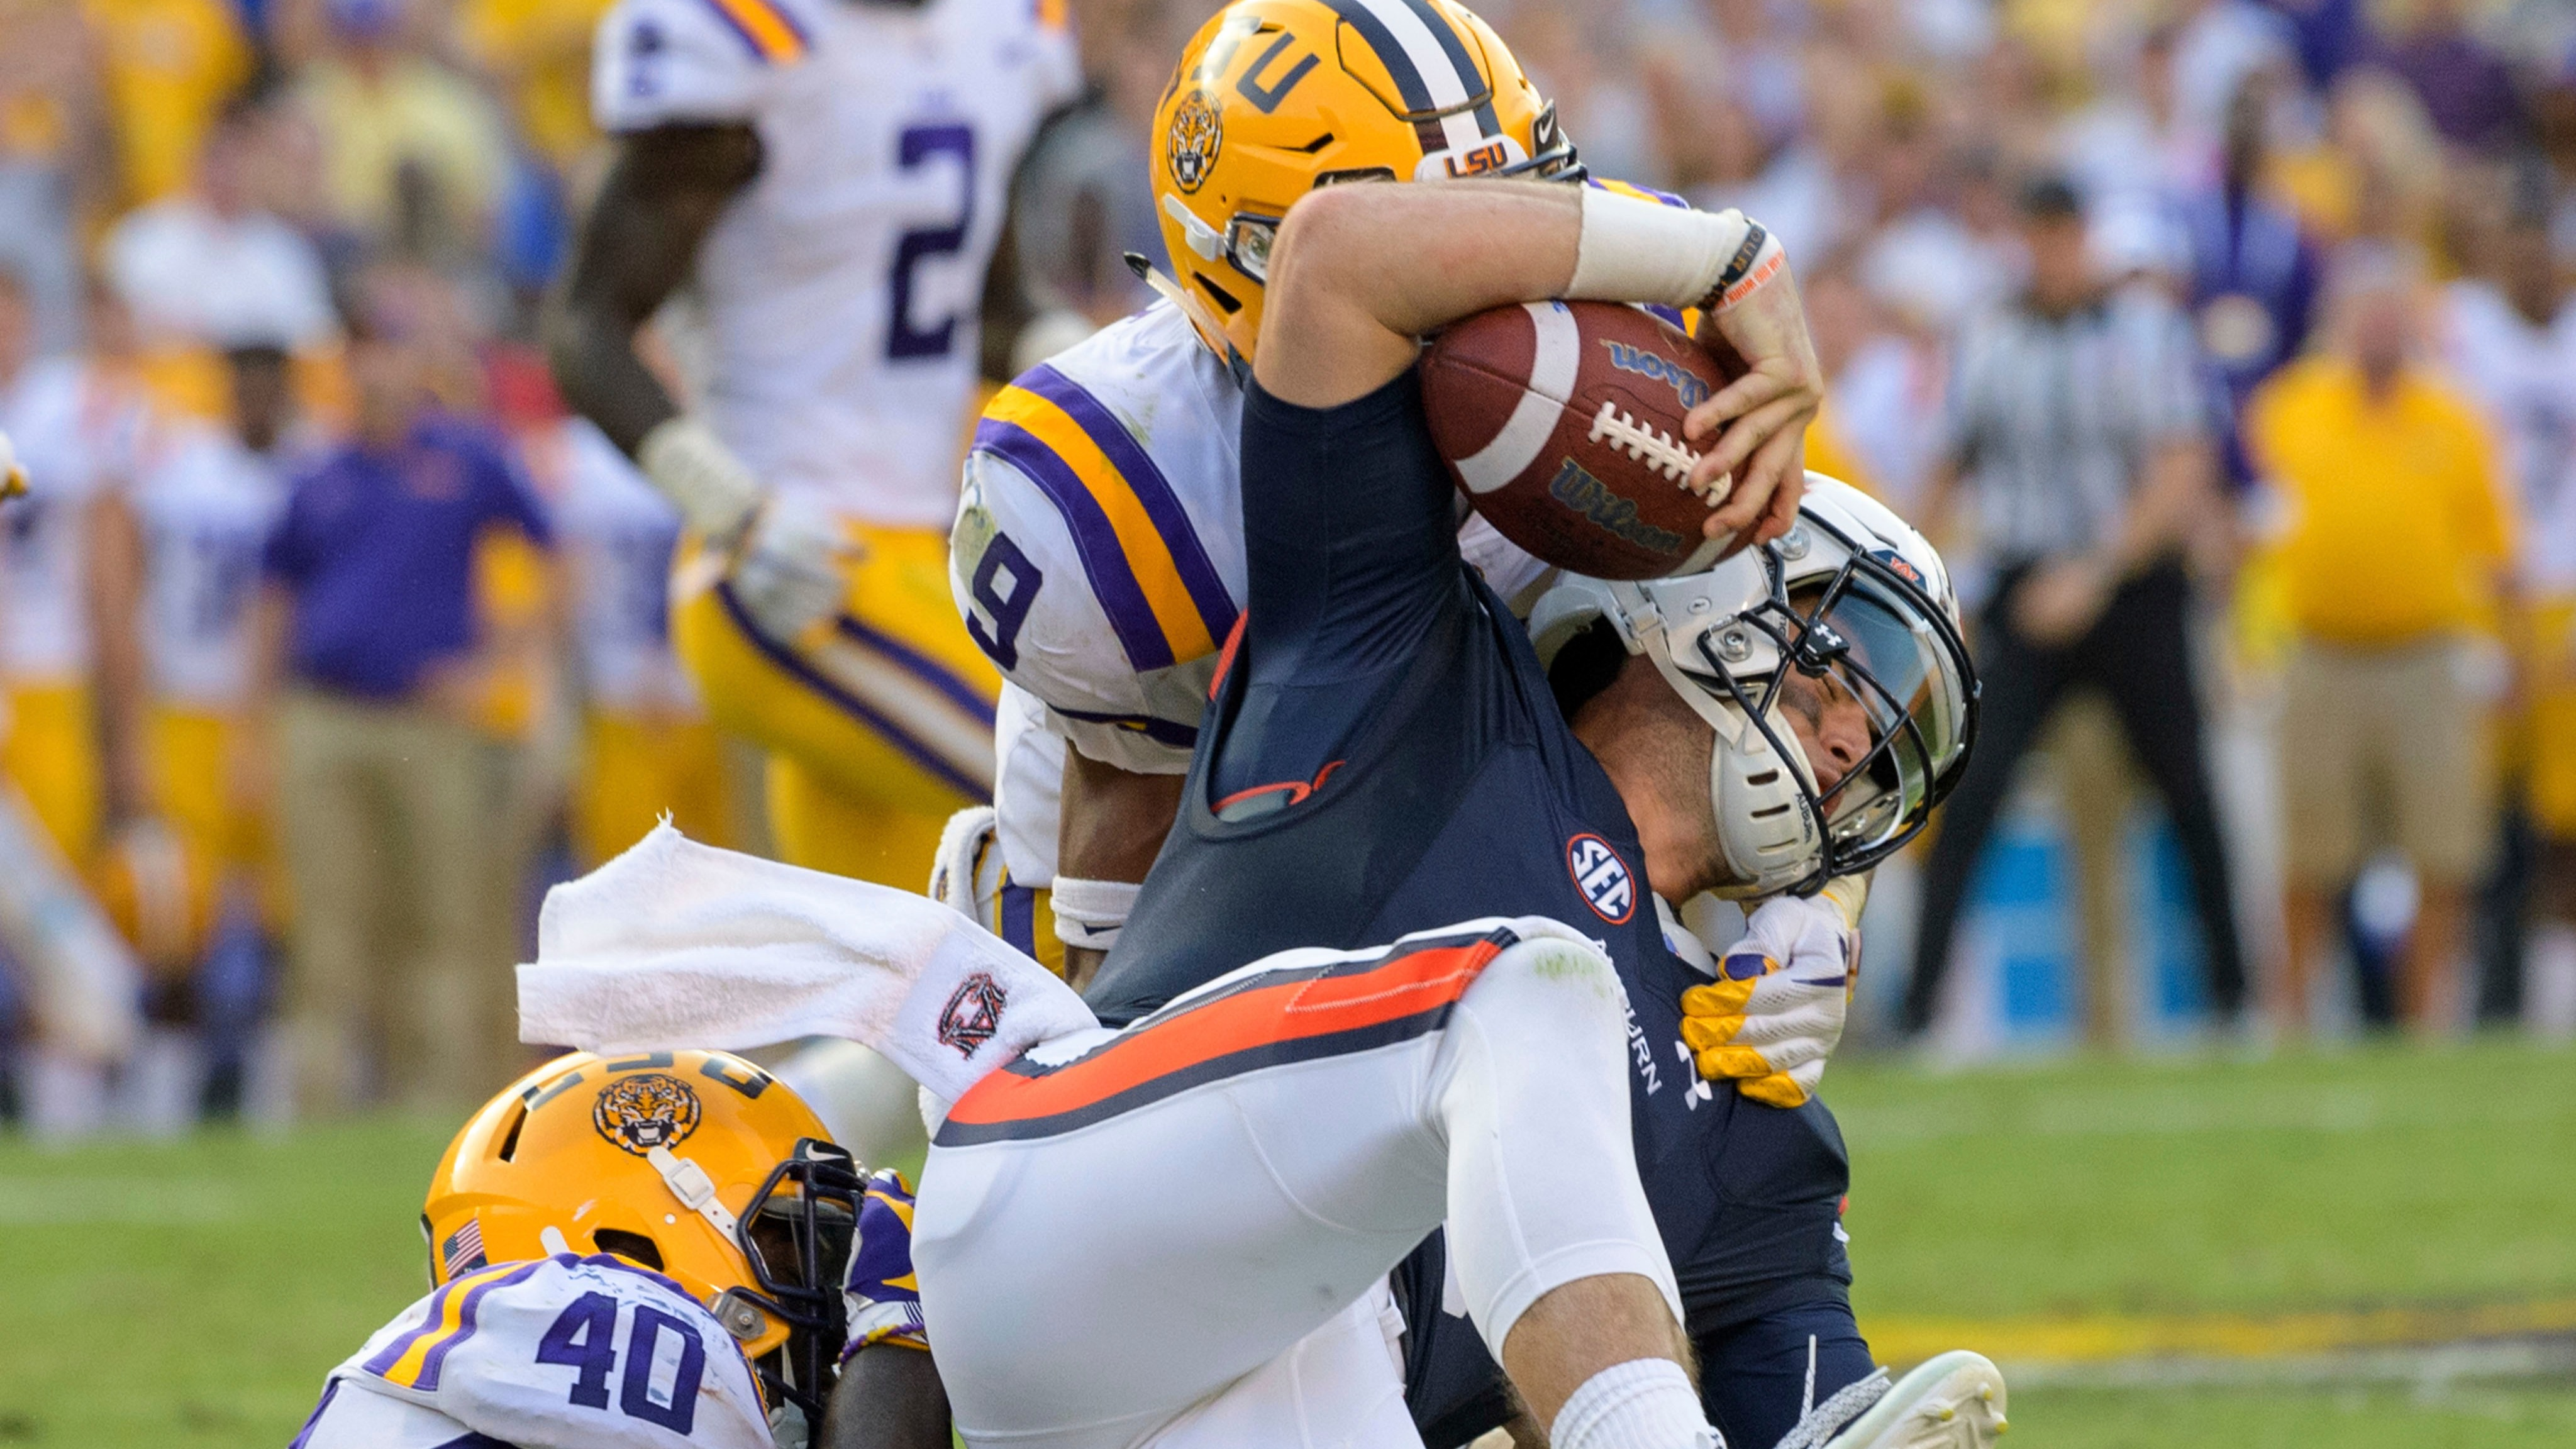 Early ncaa football betting lines pune race course betting